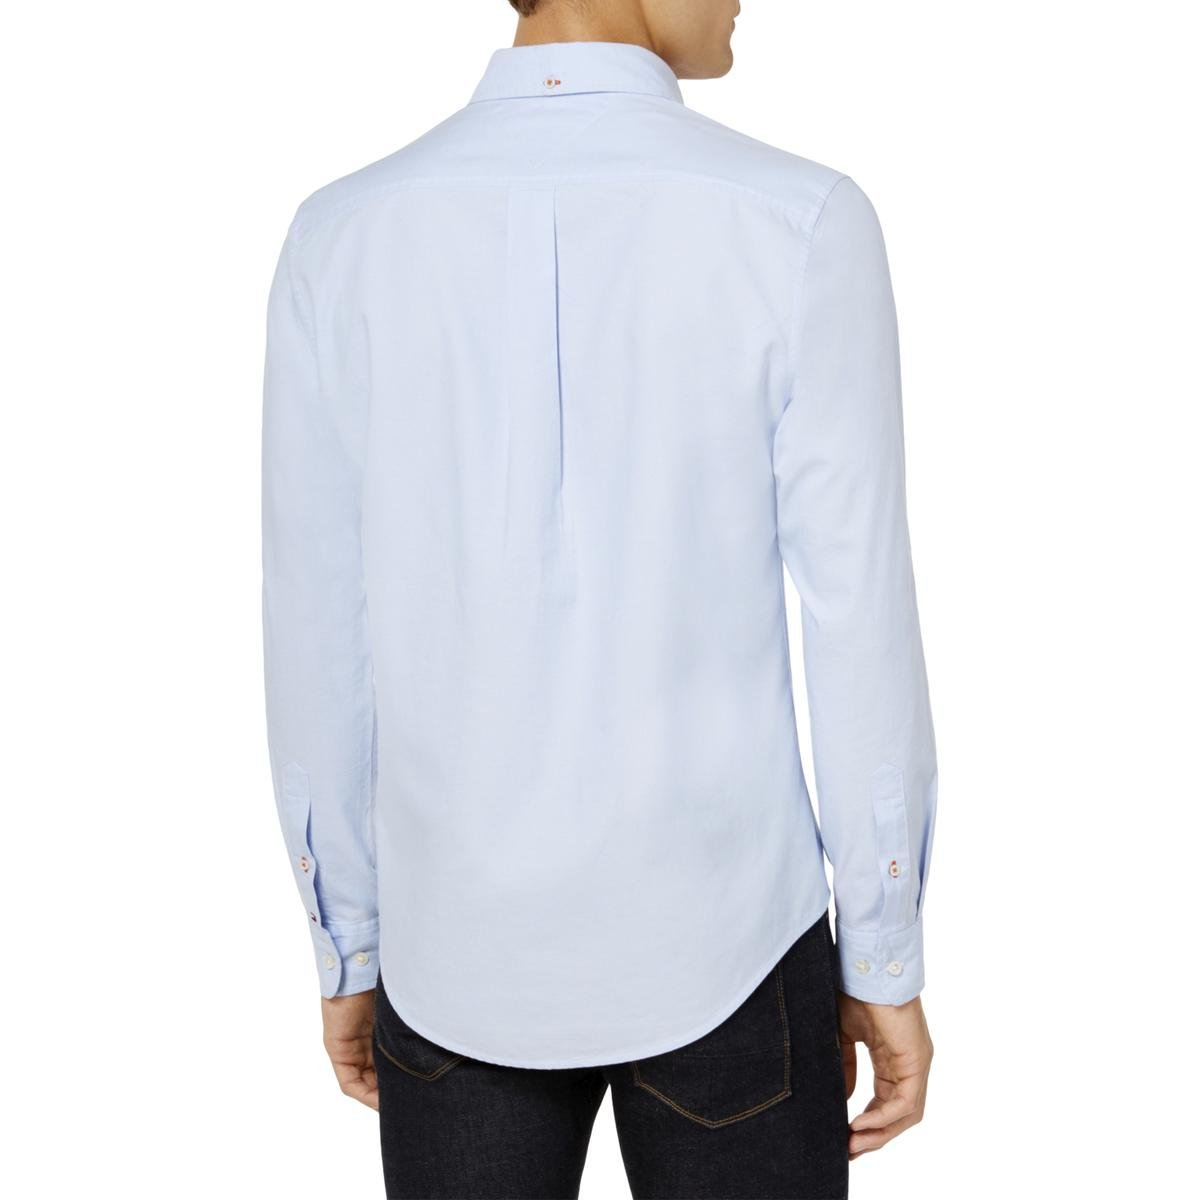 Tommy Hilfiger Mens Embroidered Button Up Shirt